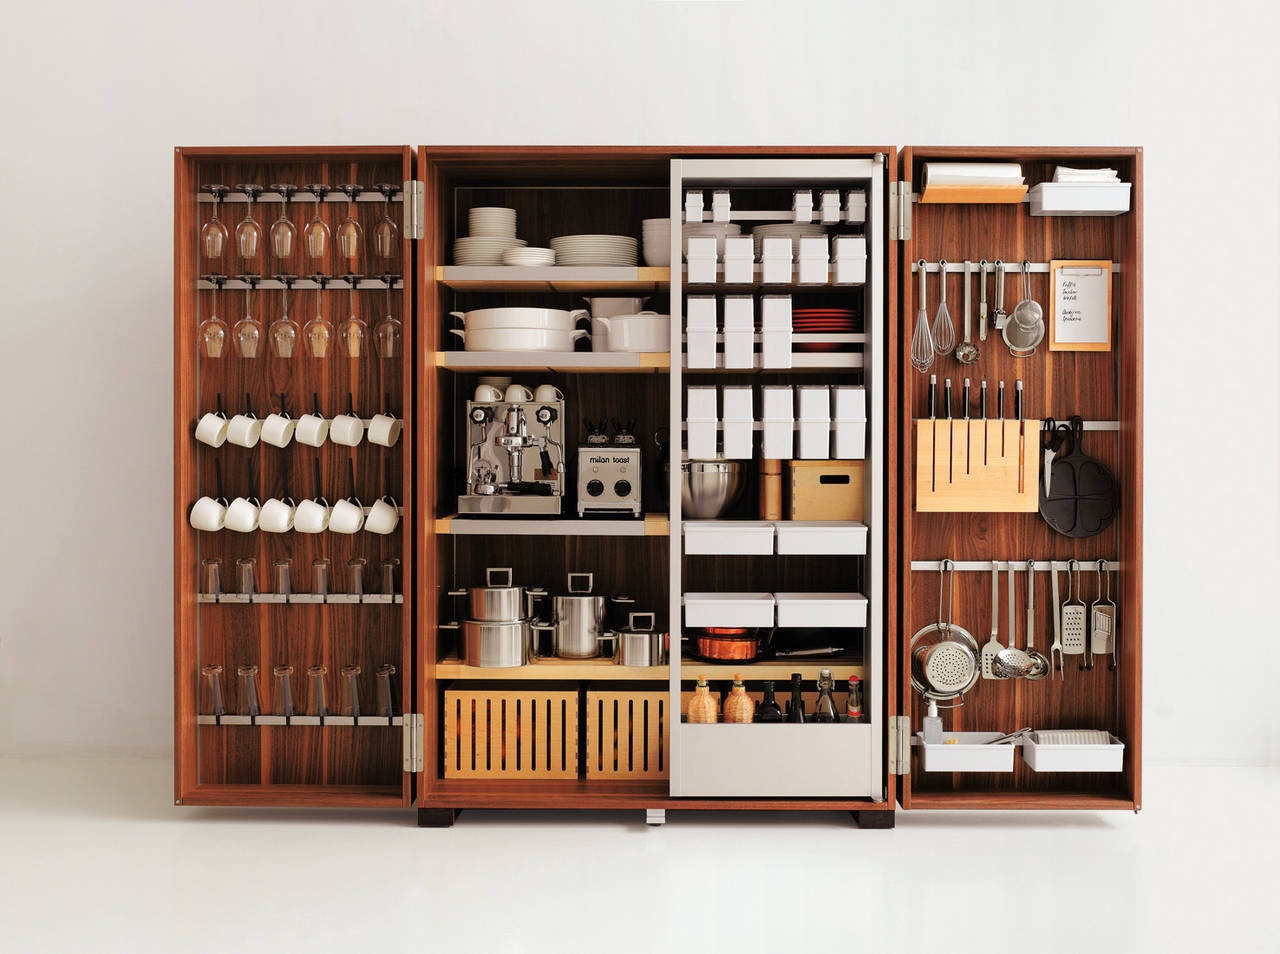 bulthaup b2, storage station in oak and walnut wood